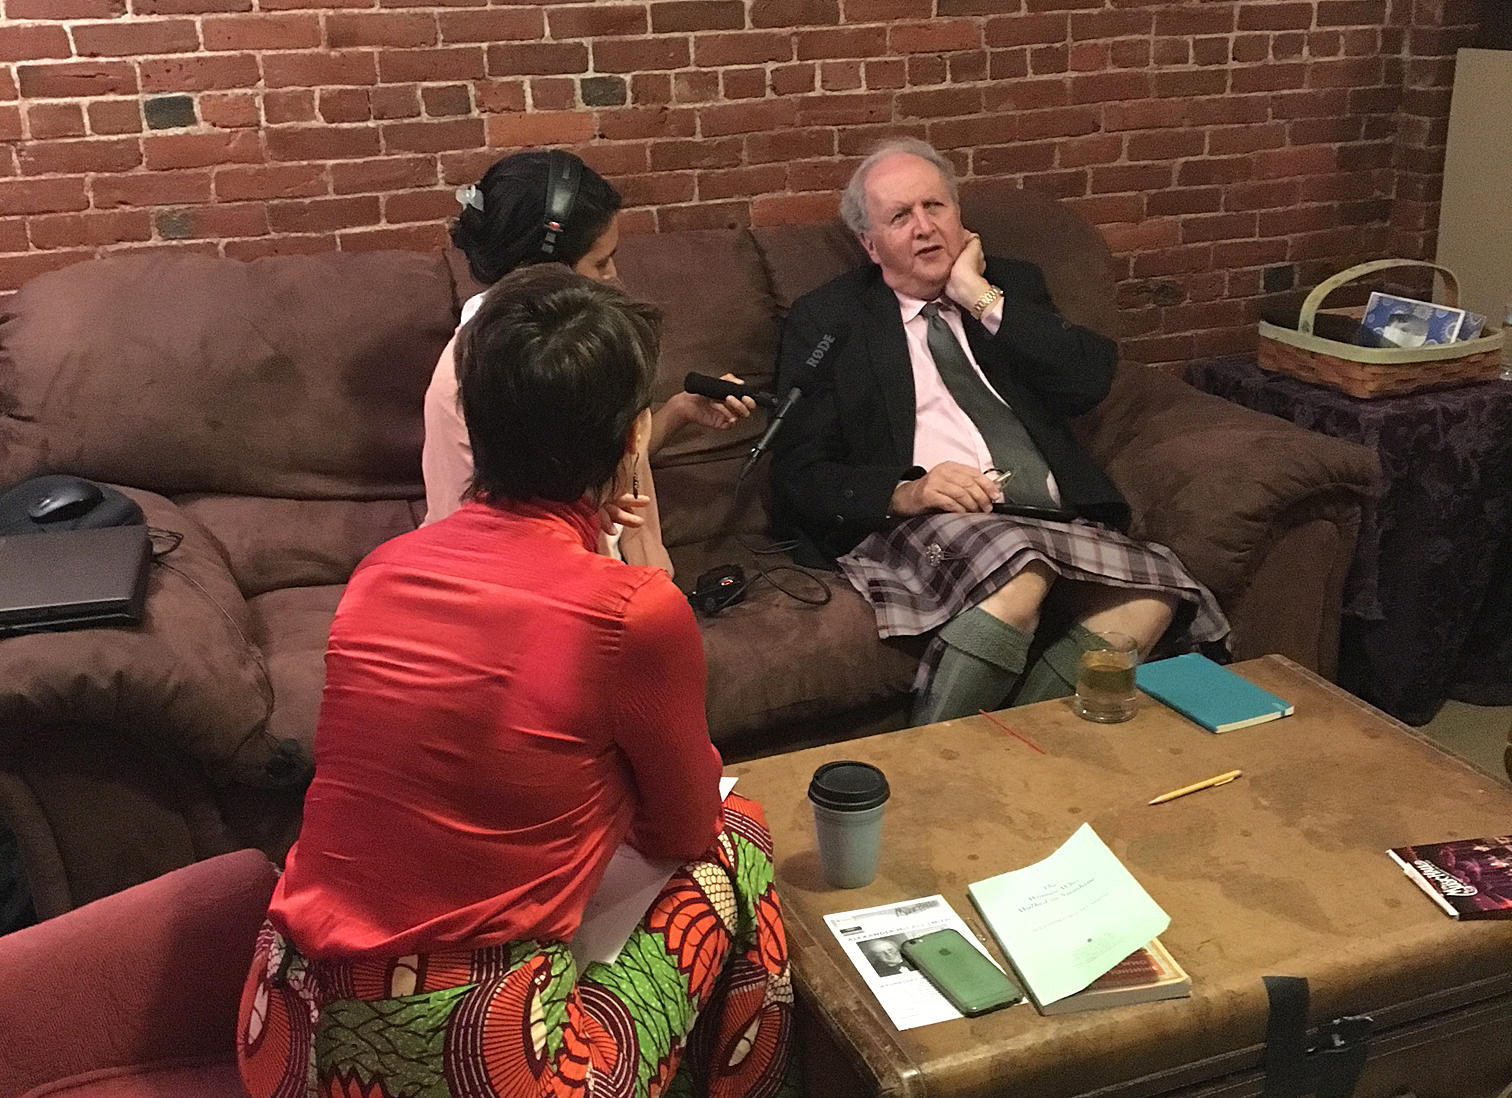 Caption: Virginia Prescott chats with Alexander McCall Smith backstage at The Music Hall in Portsmouth, Credit: Sara Plourde